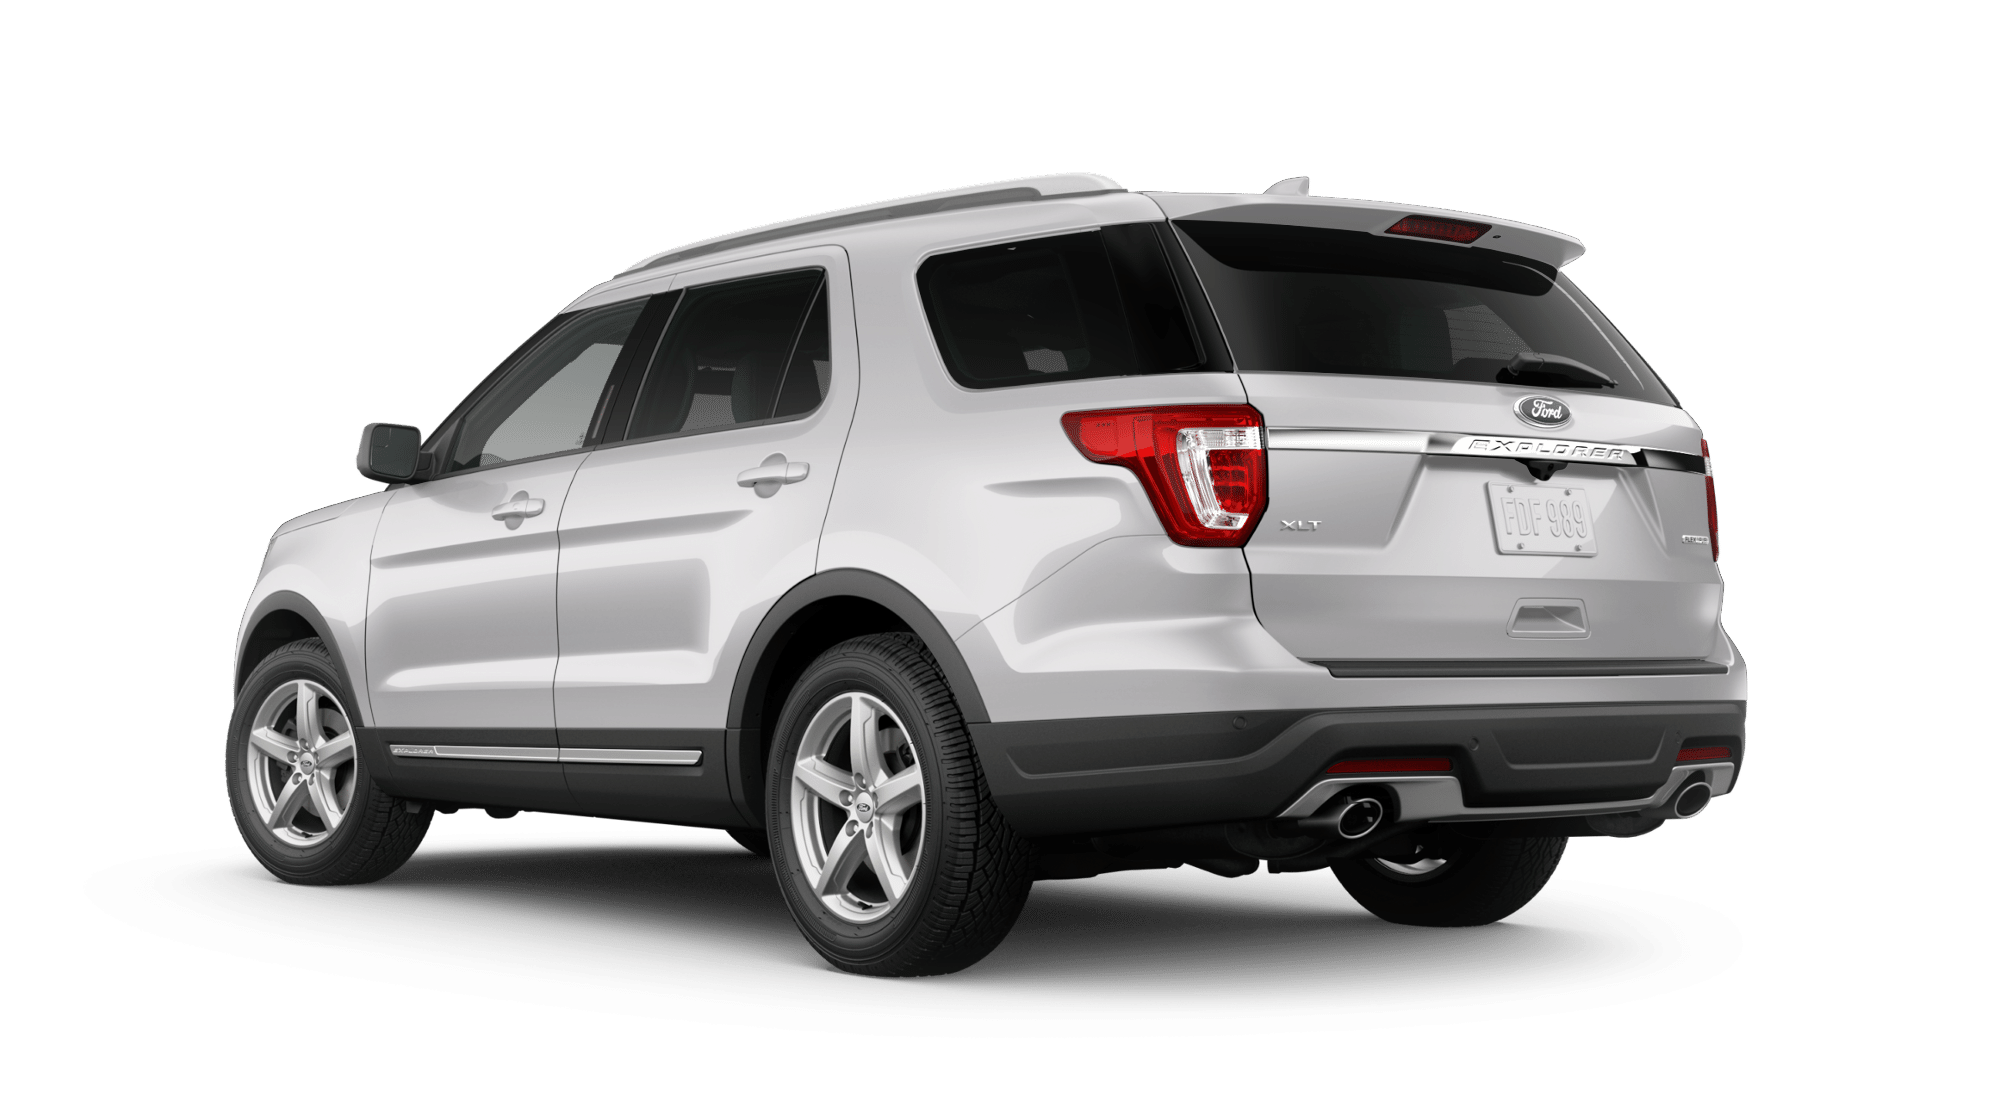 2019 Ford Explorer XLT Rear White Silver Exterior